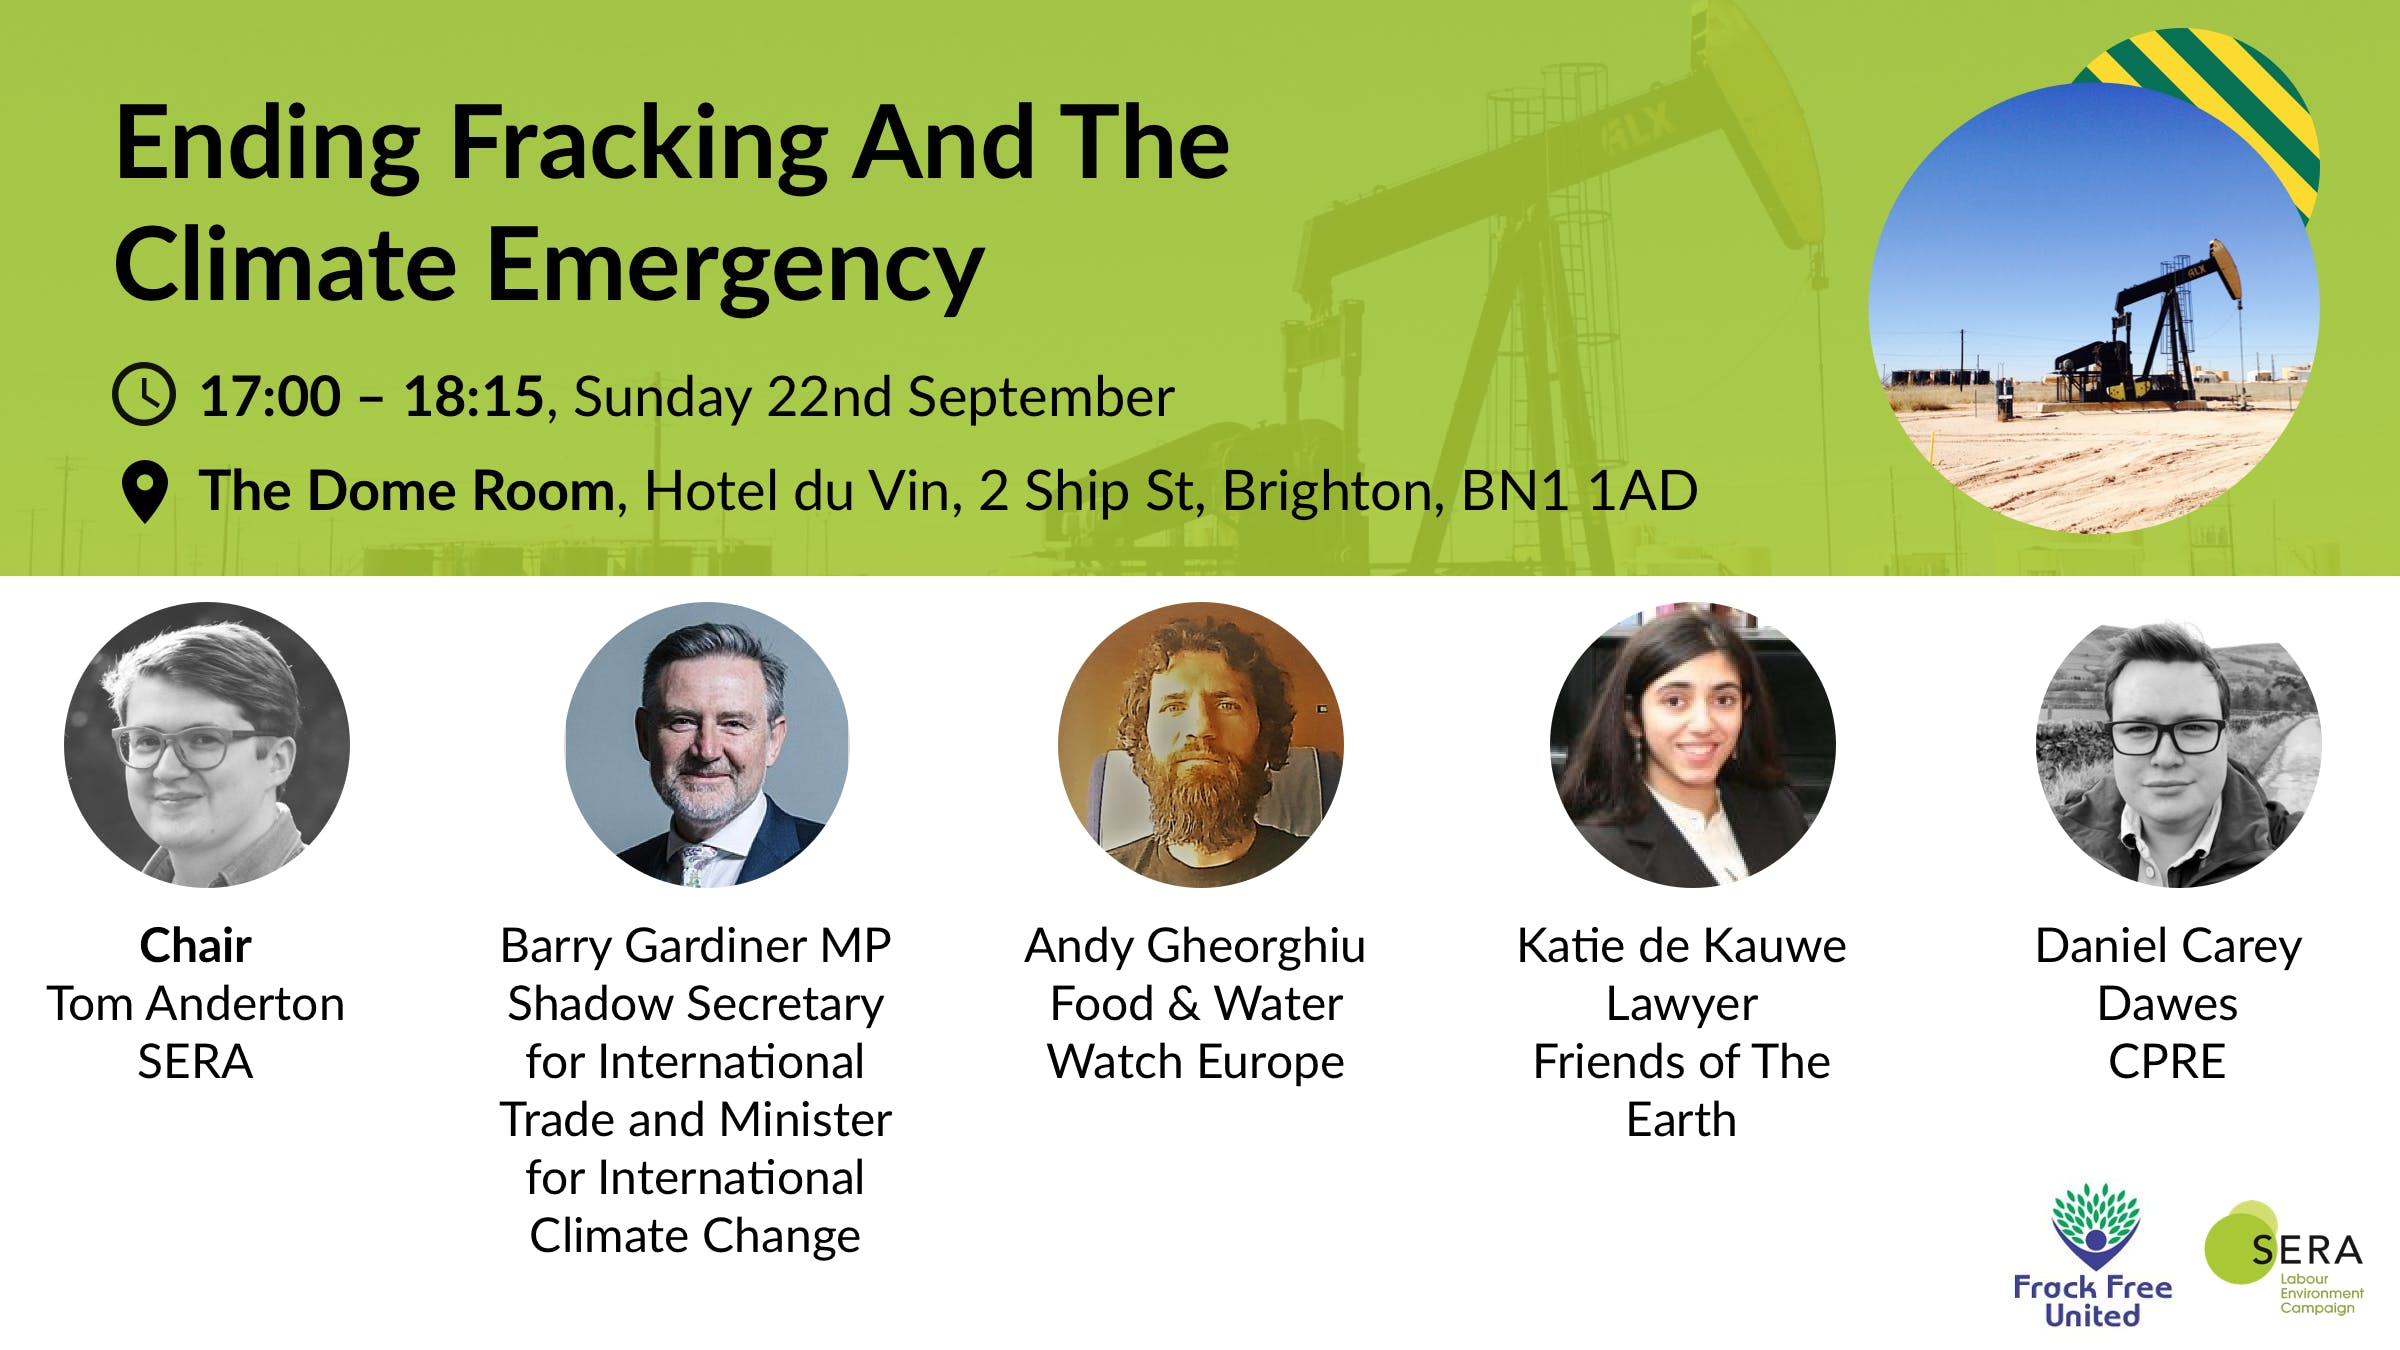 Ending fracking and the climate emergency